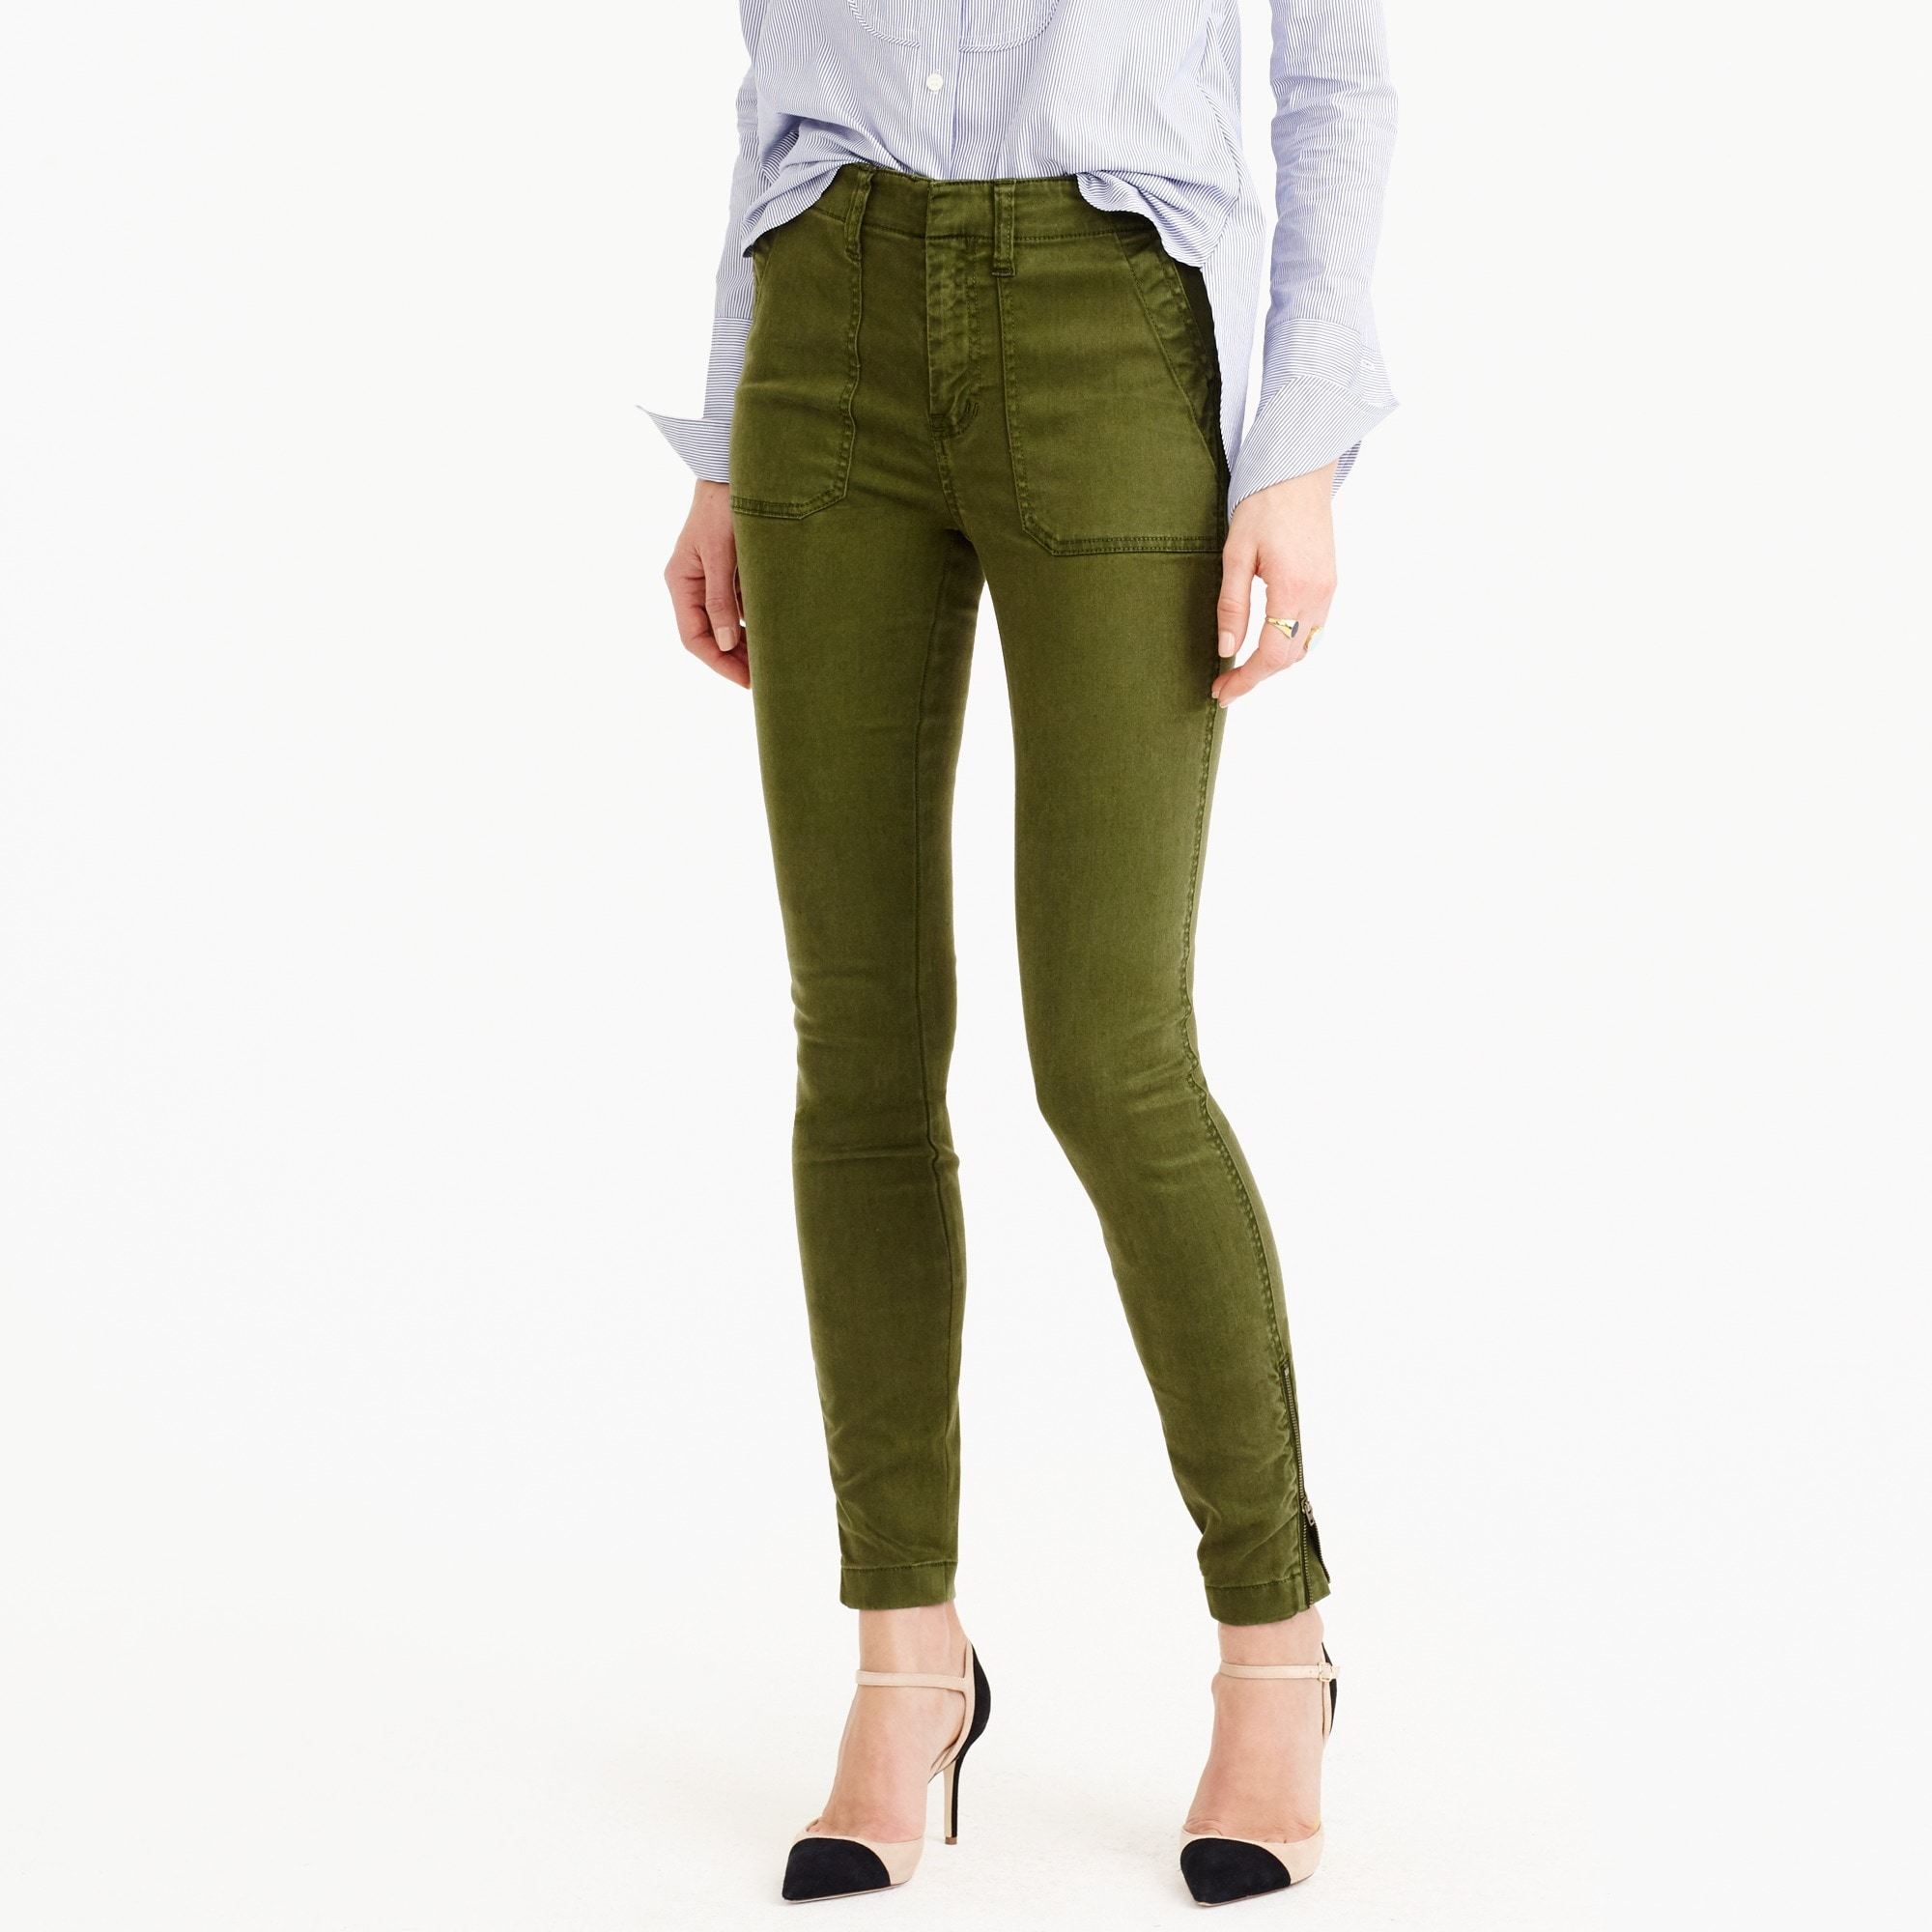 tall skinny stretch cargo pant with zippers : women's pants